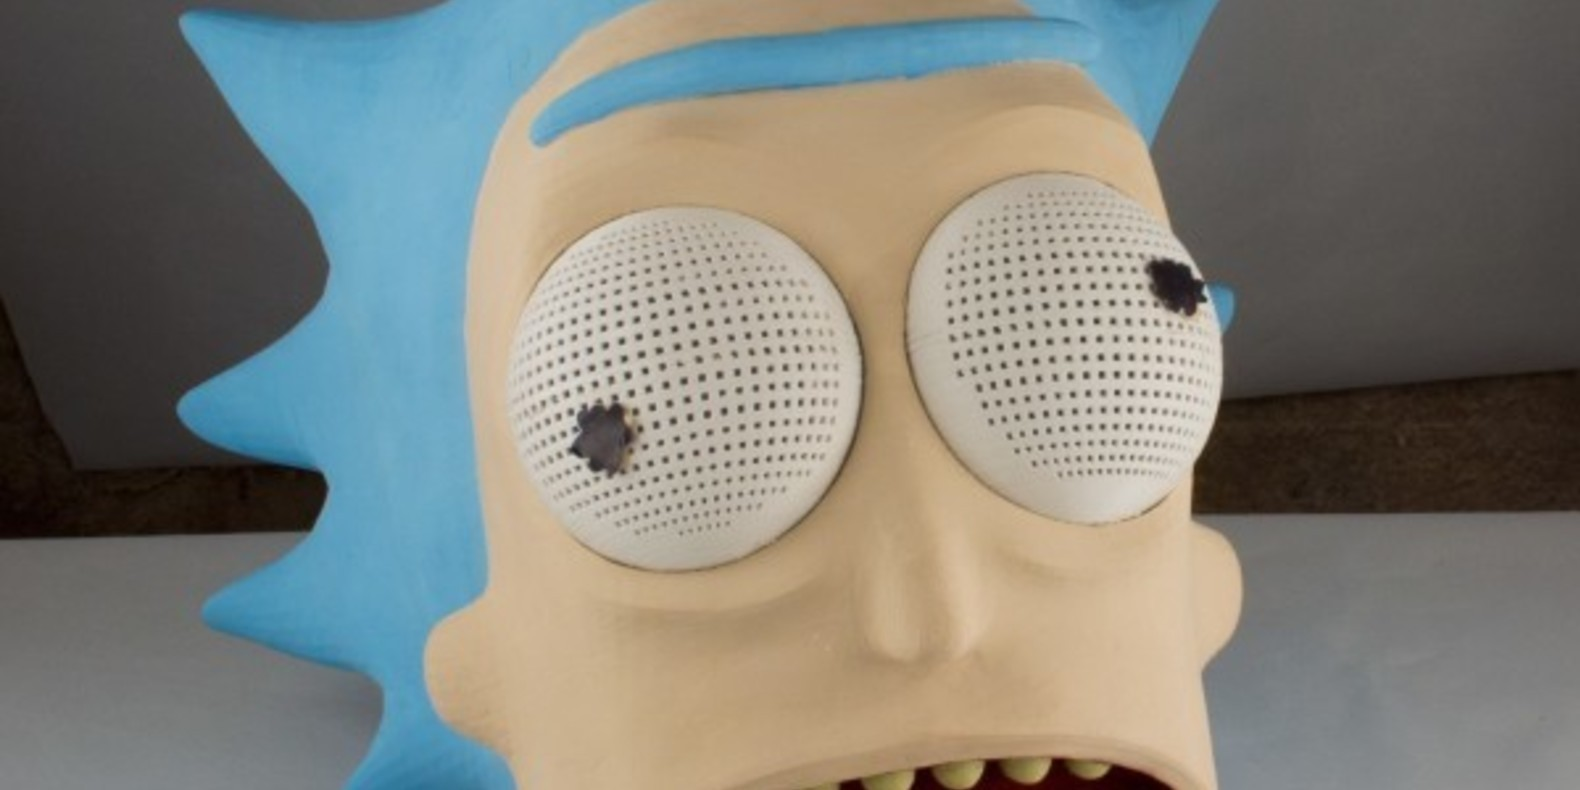 rick-sanchez-masque-fichier-3d-cults-3d-stl-rickmorty-2